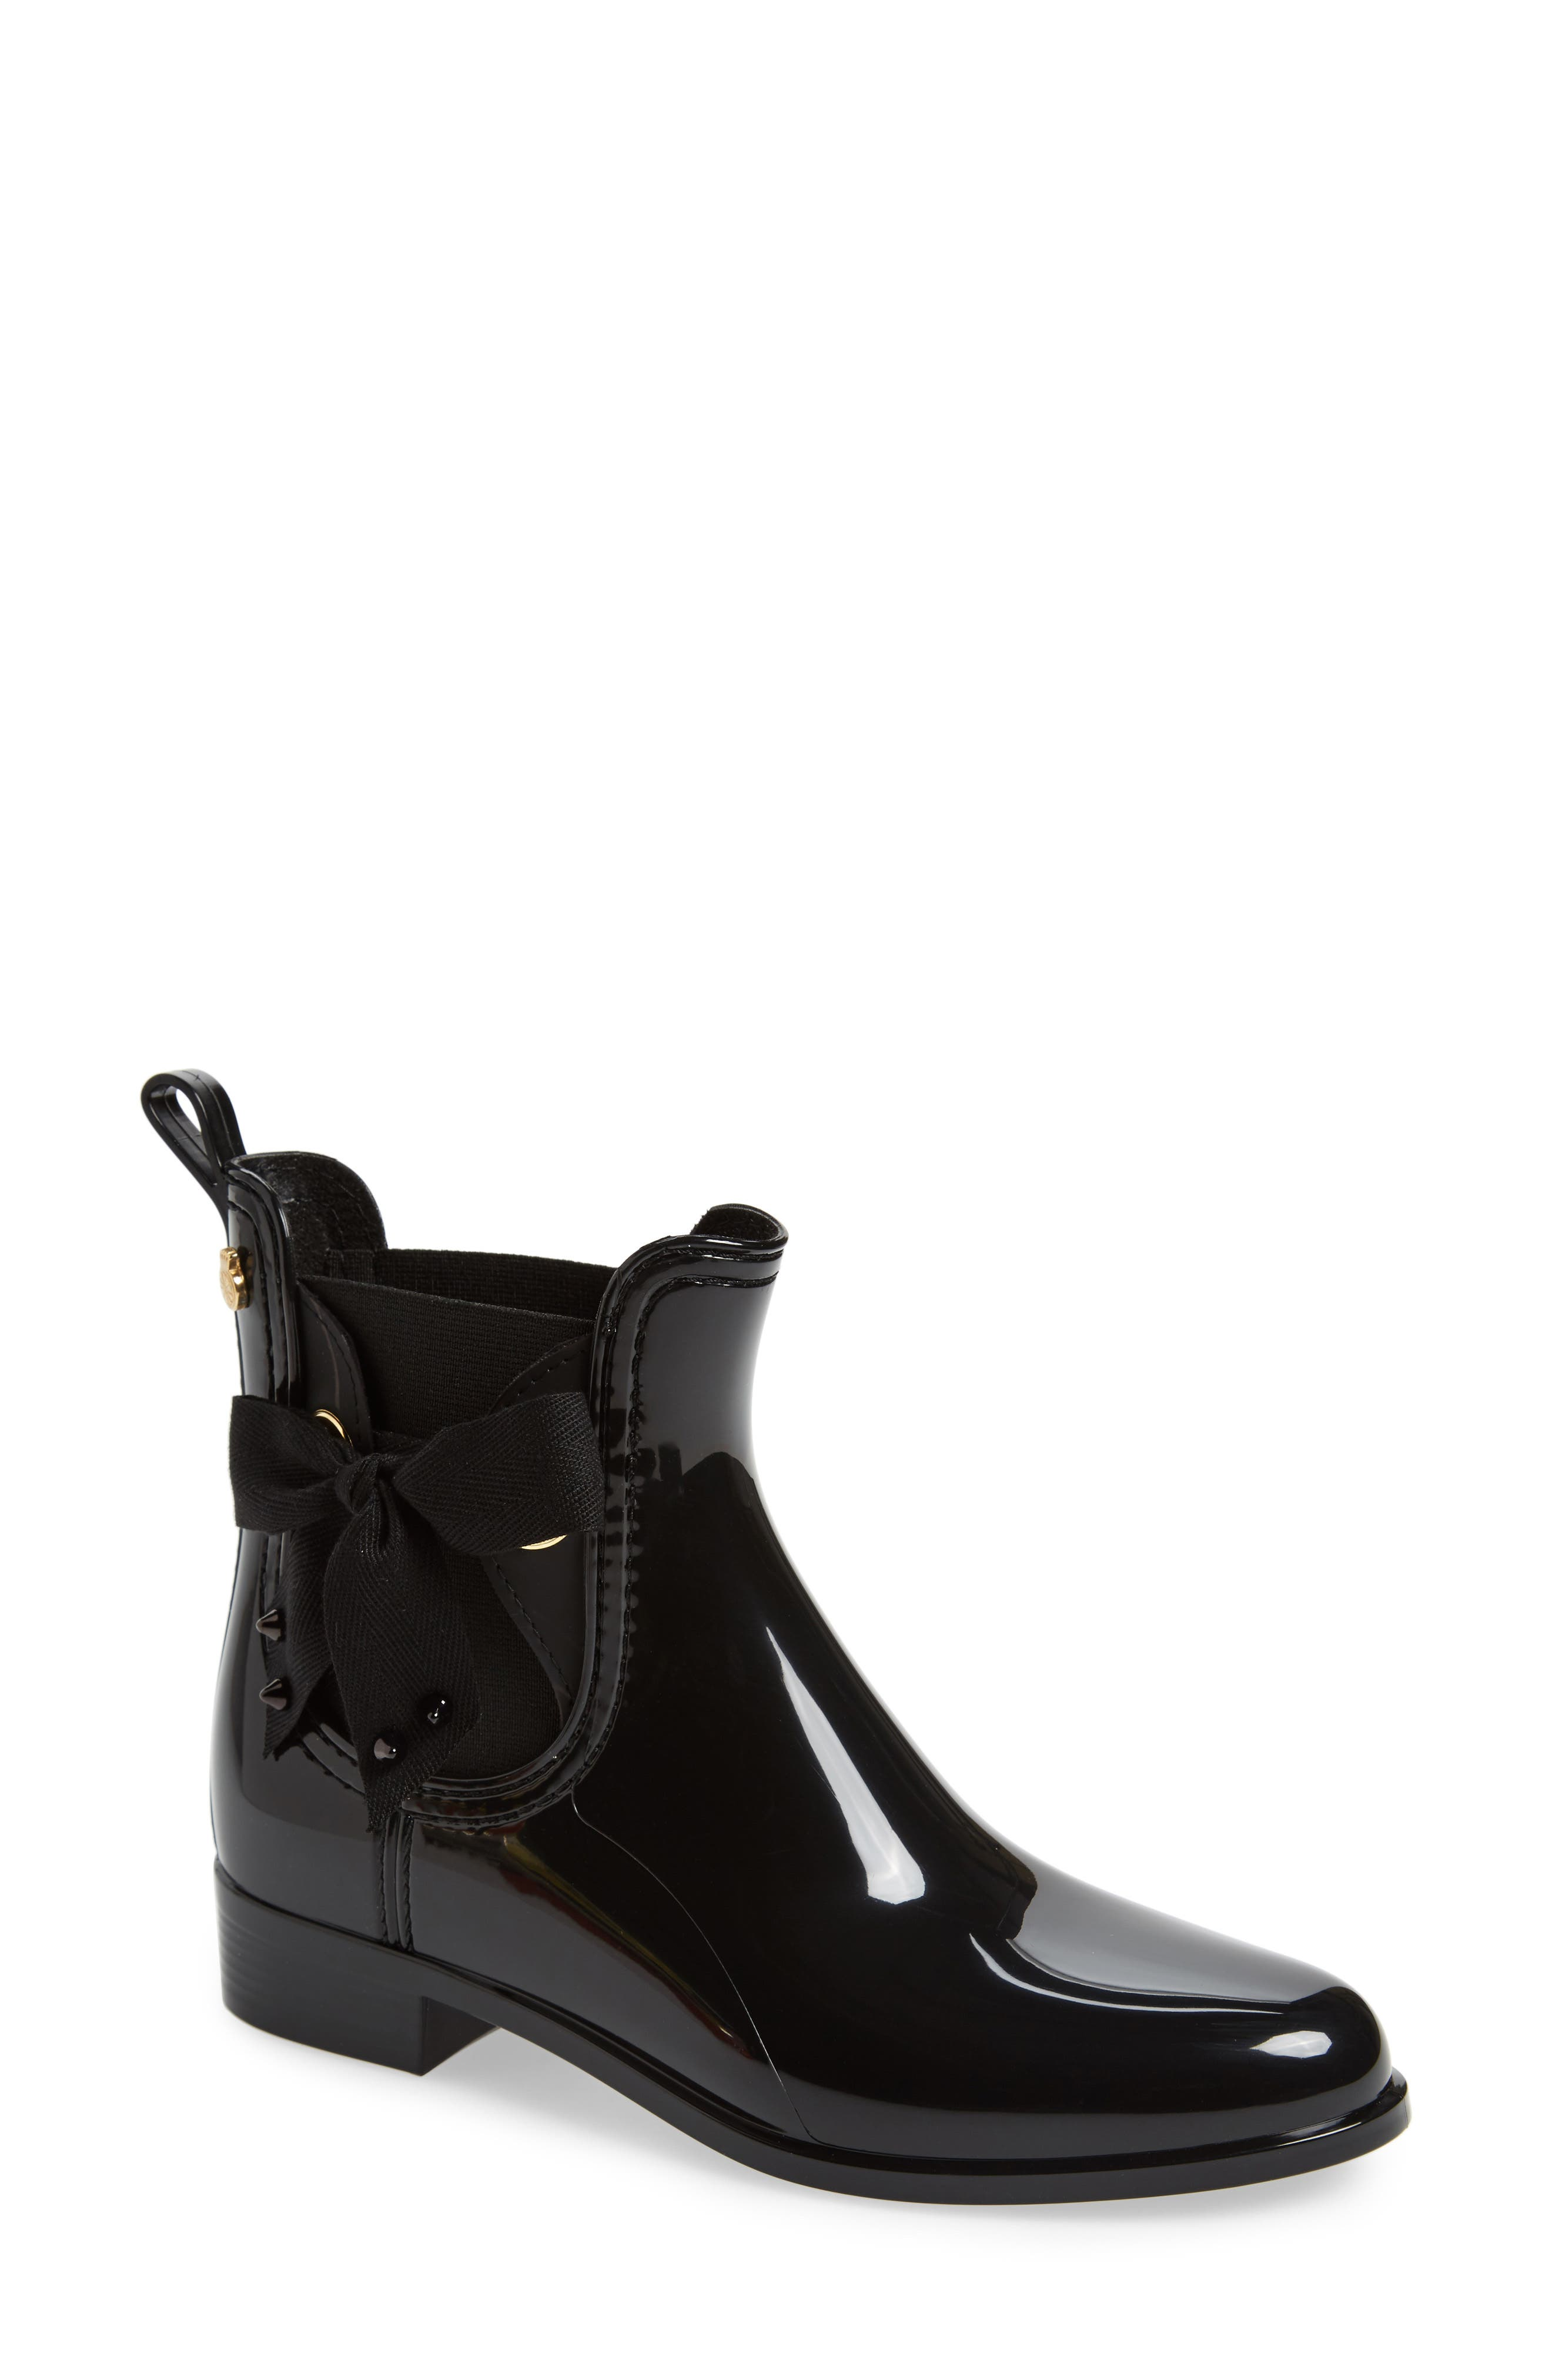 Haley Waterproof Chelsea Boot,                             Main thumbnail 1, color,                             Black Gloss